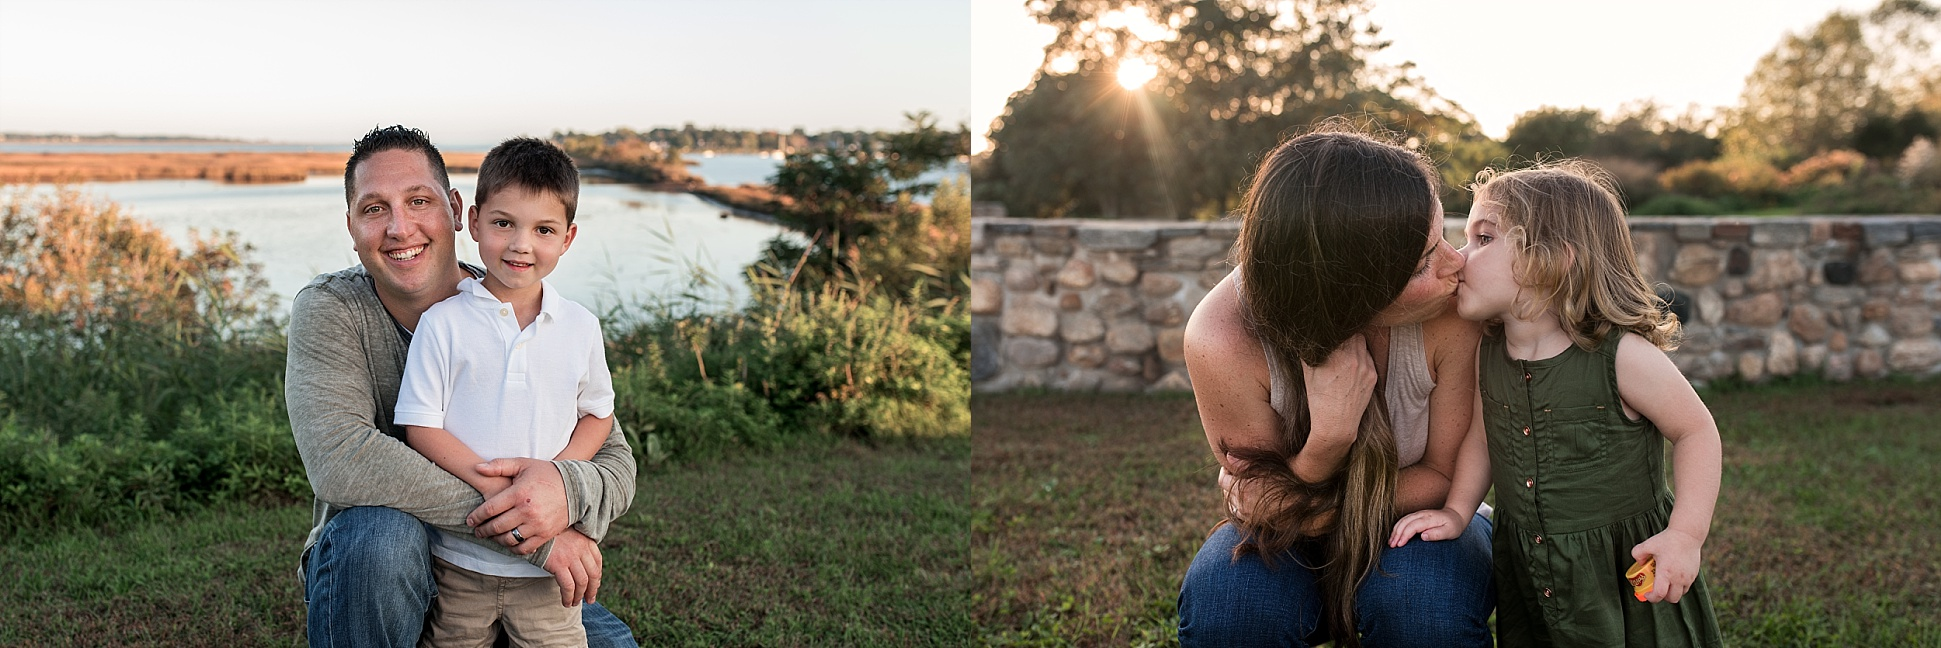 lifestyle family photographer in old saybrook, ct